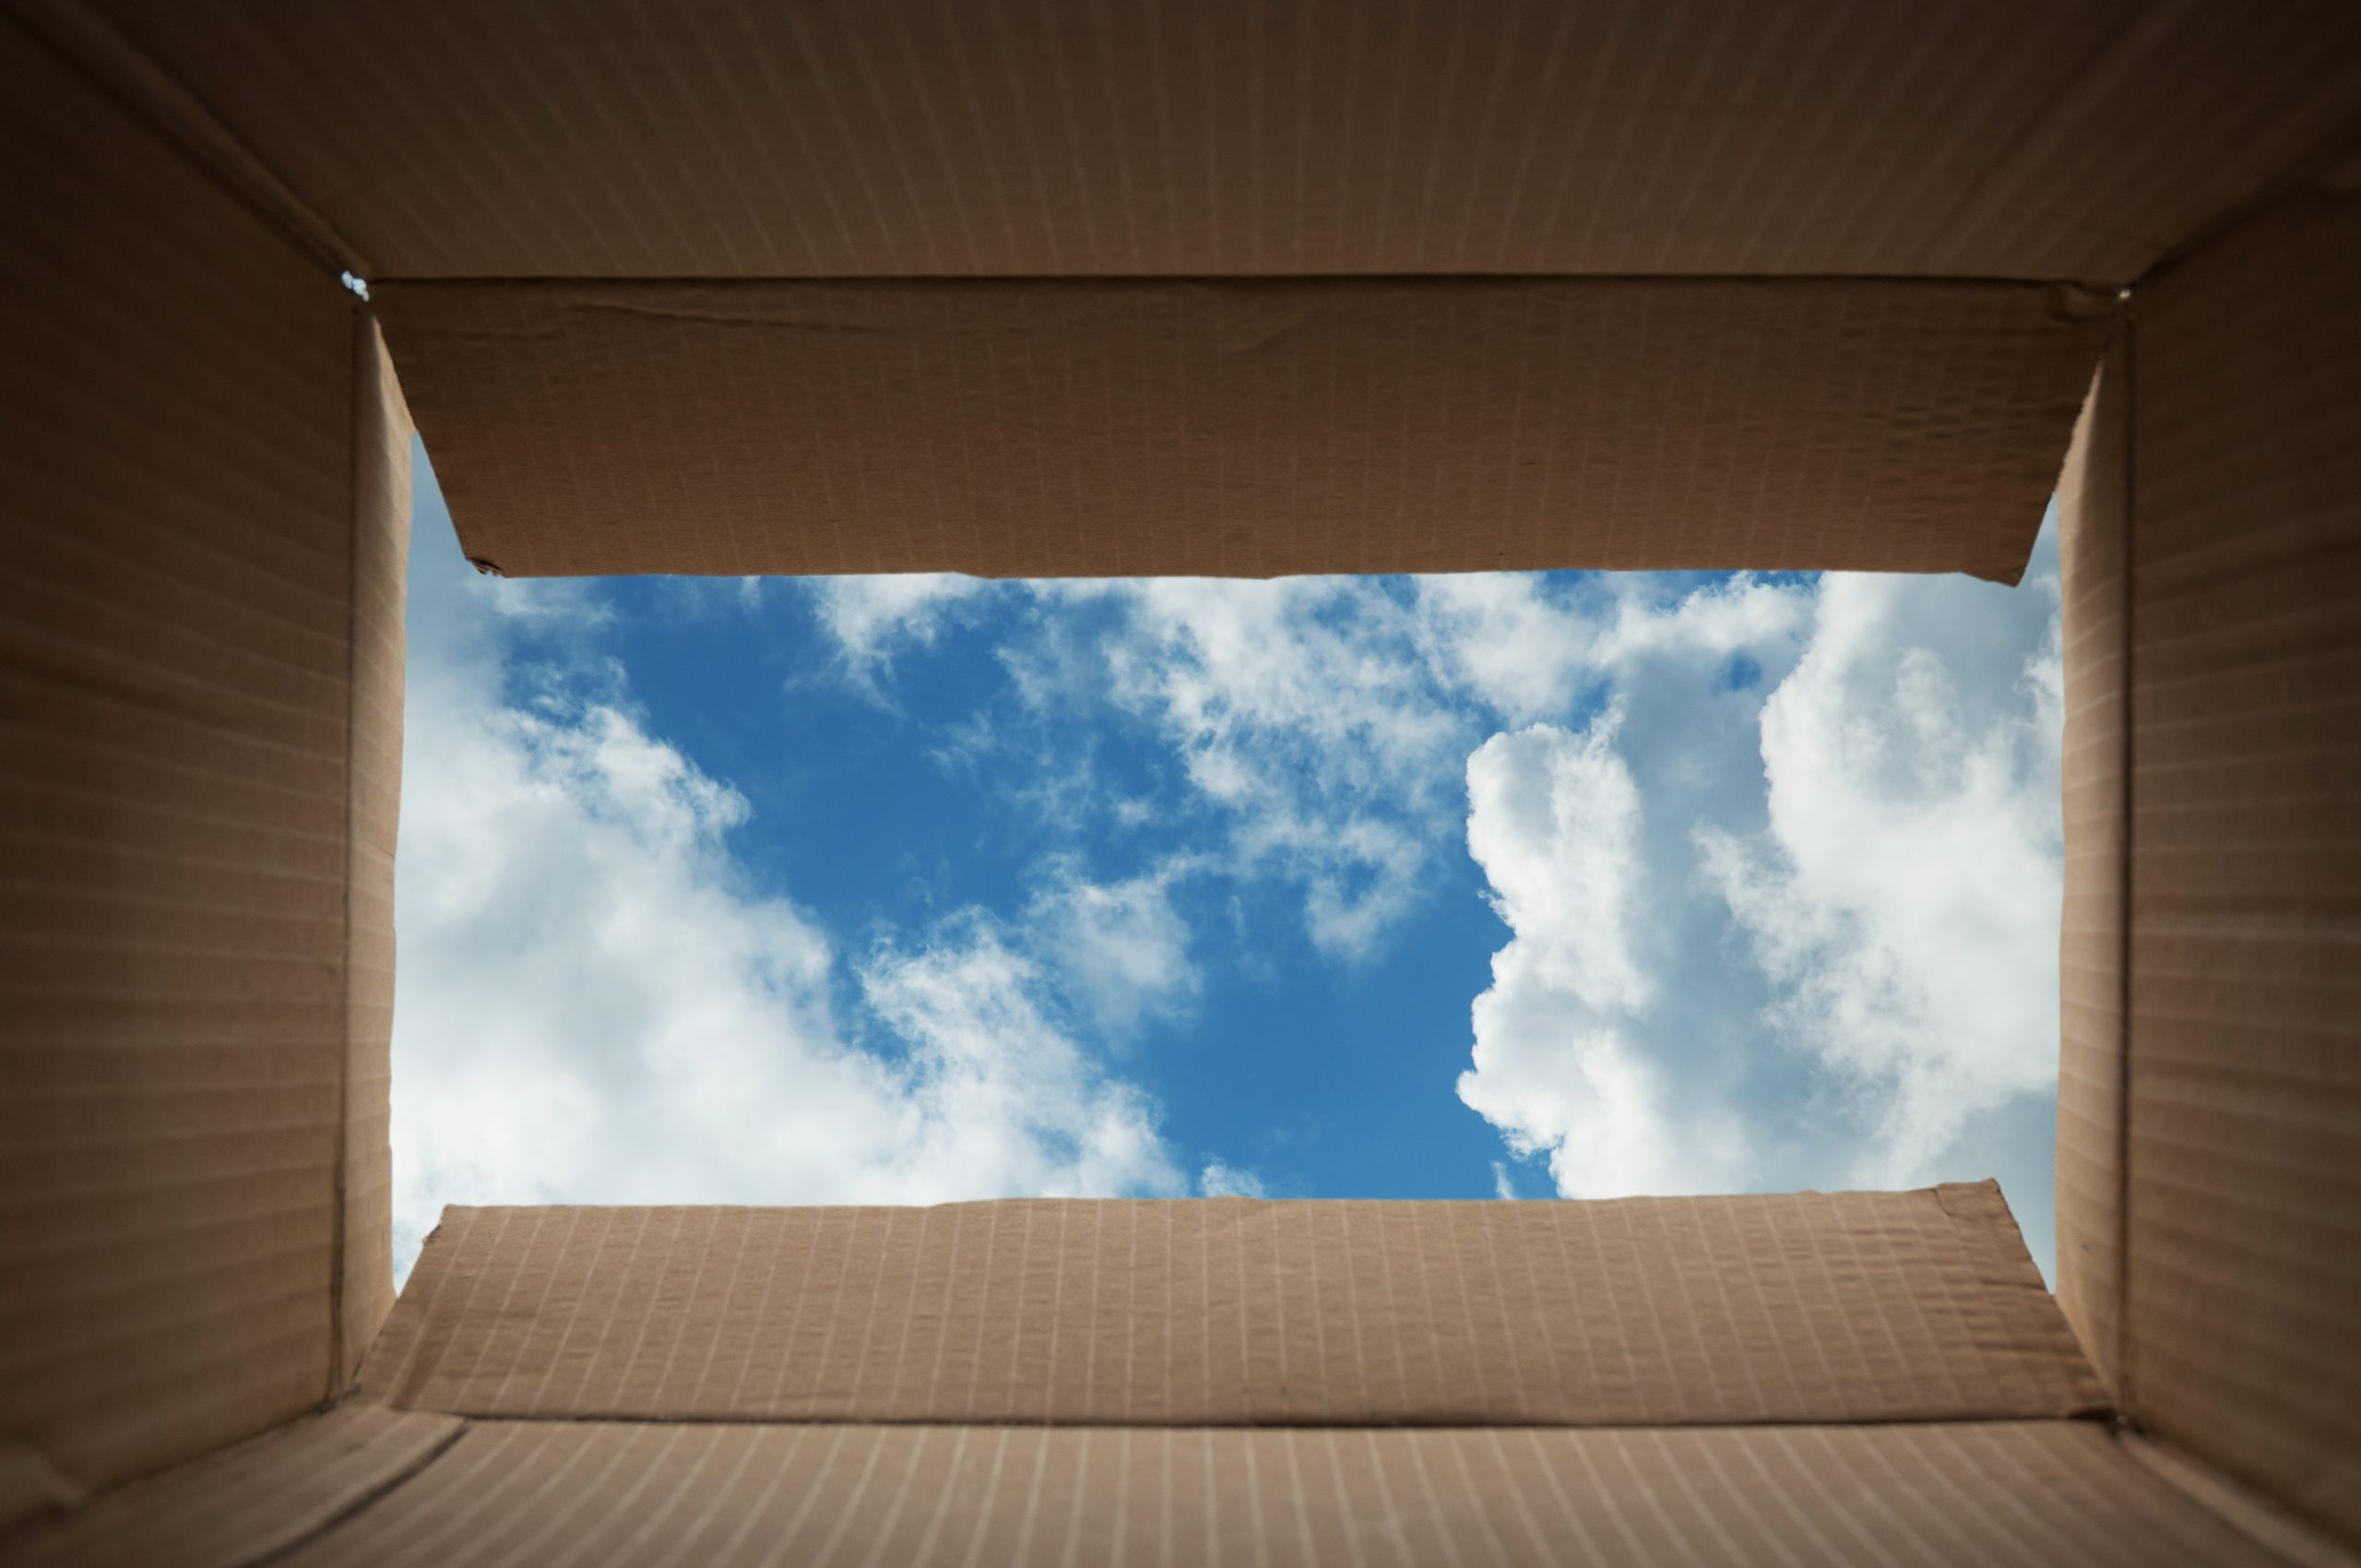 View from an open box looking at blue sky and clouds